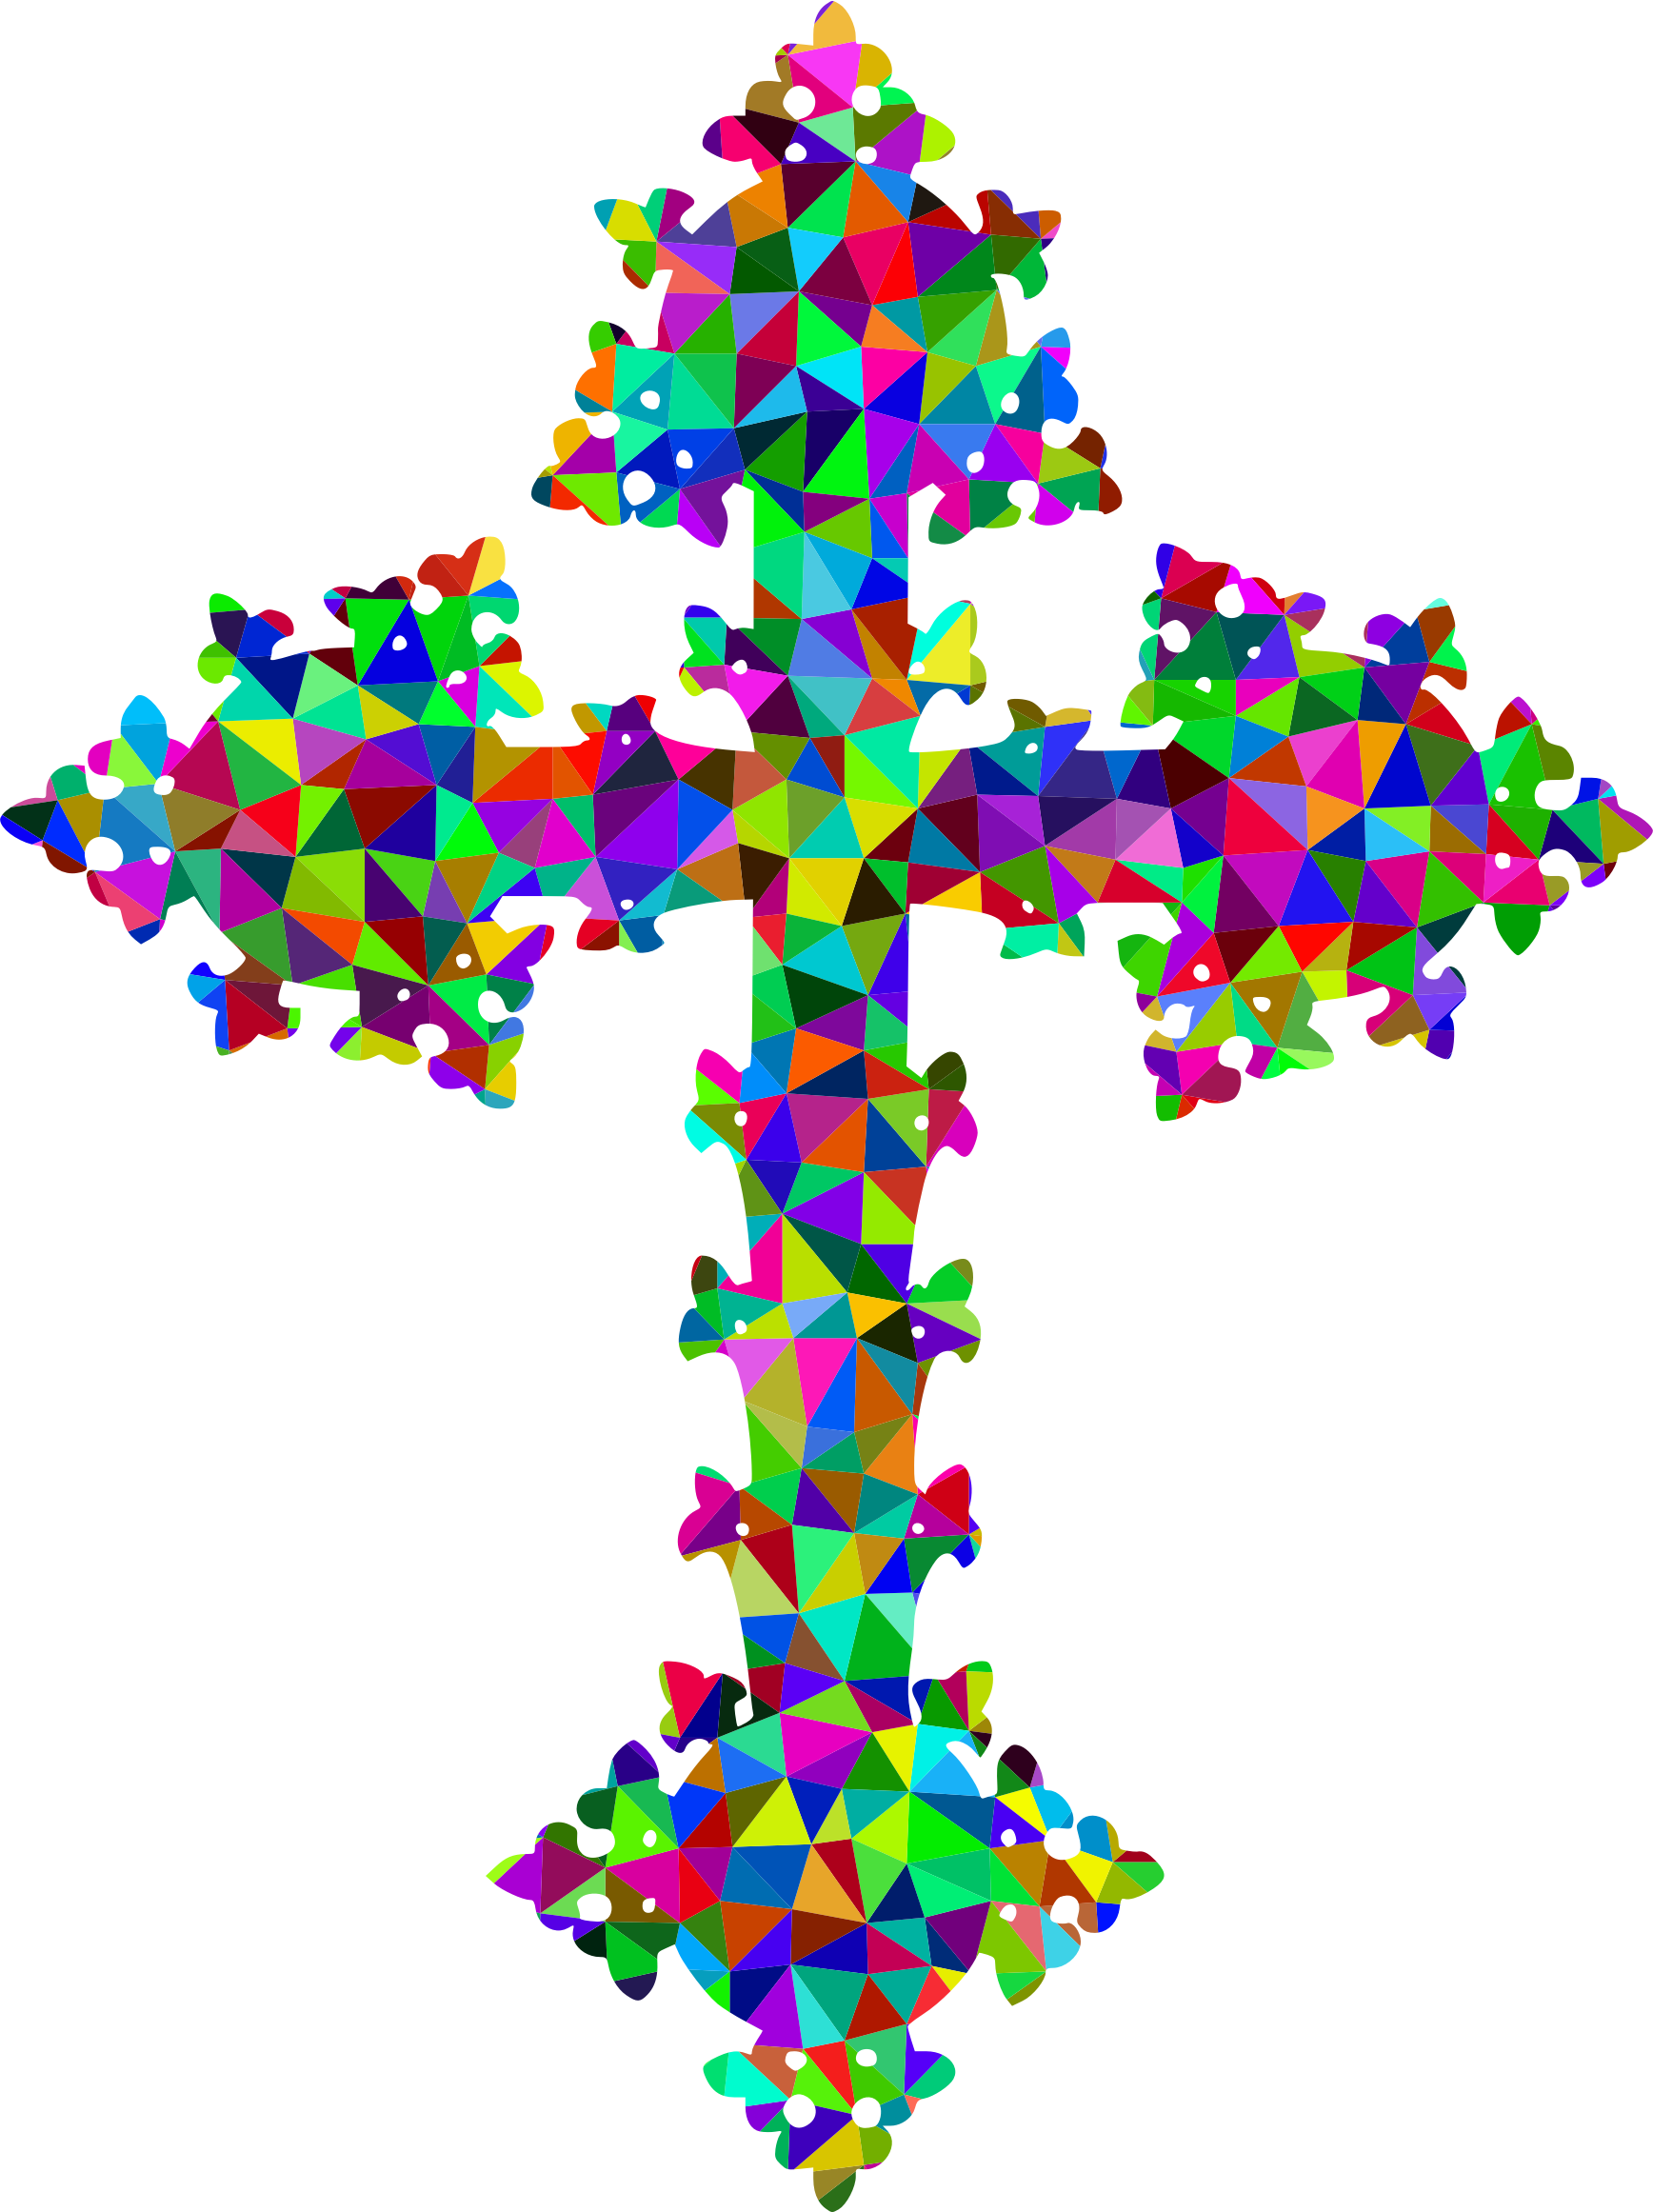 Prismatic Low Poly Ornate Cross by GDJ